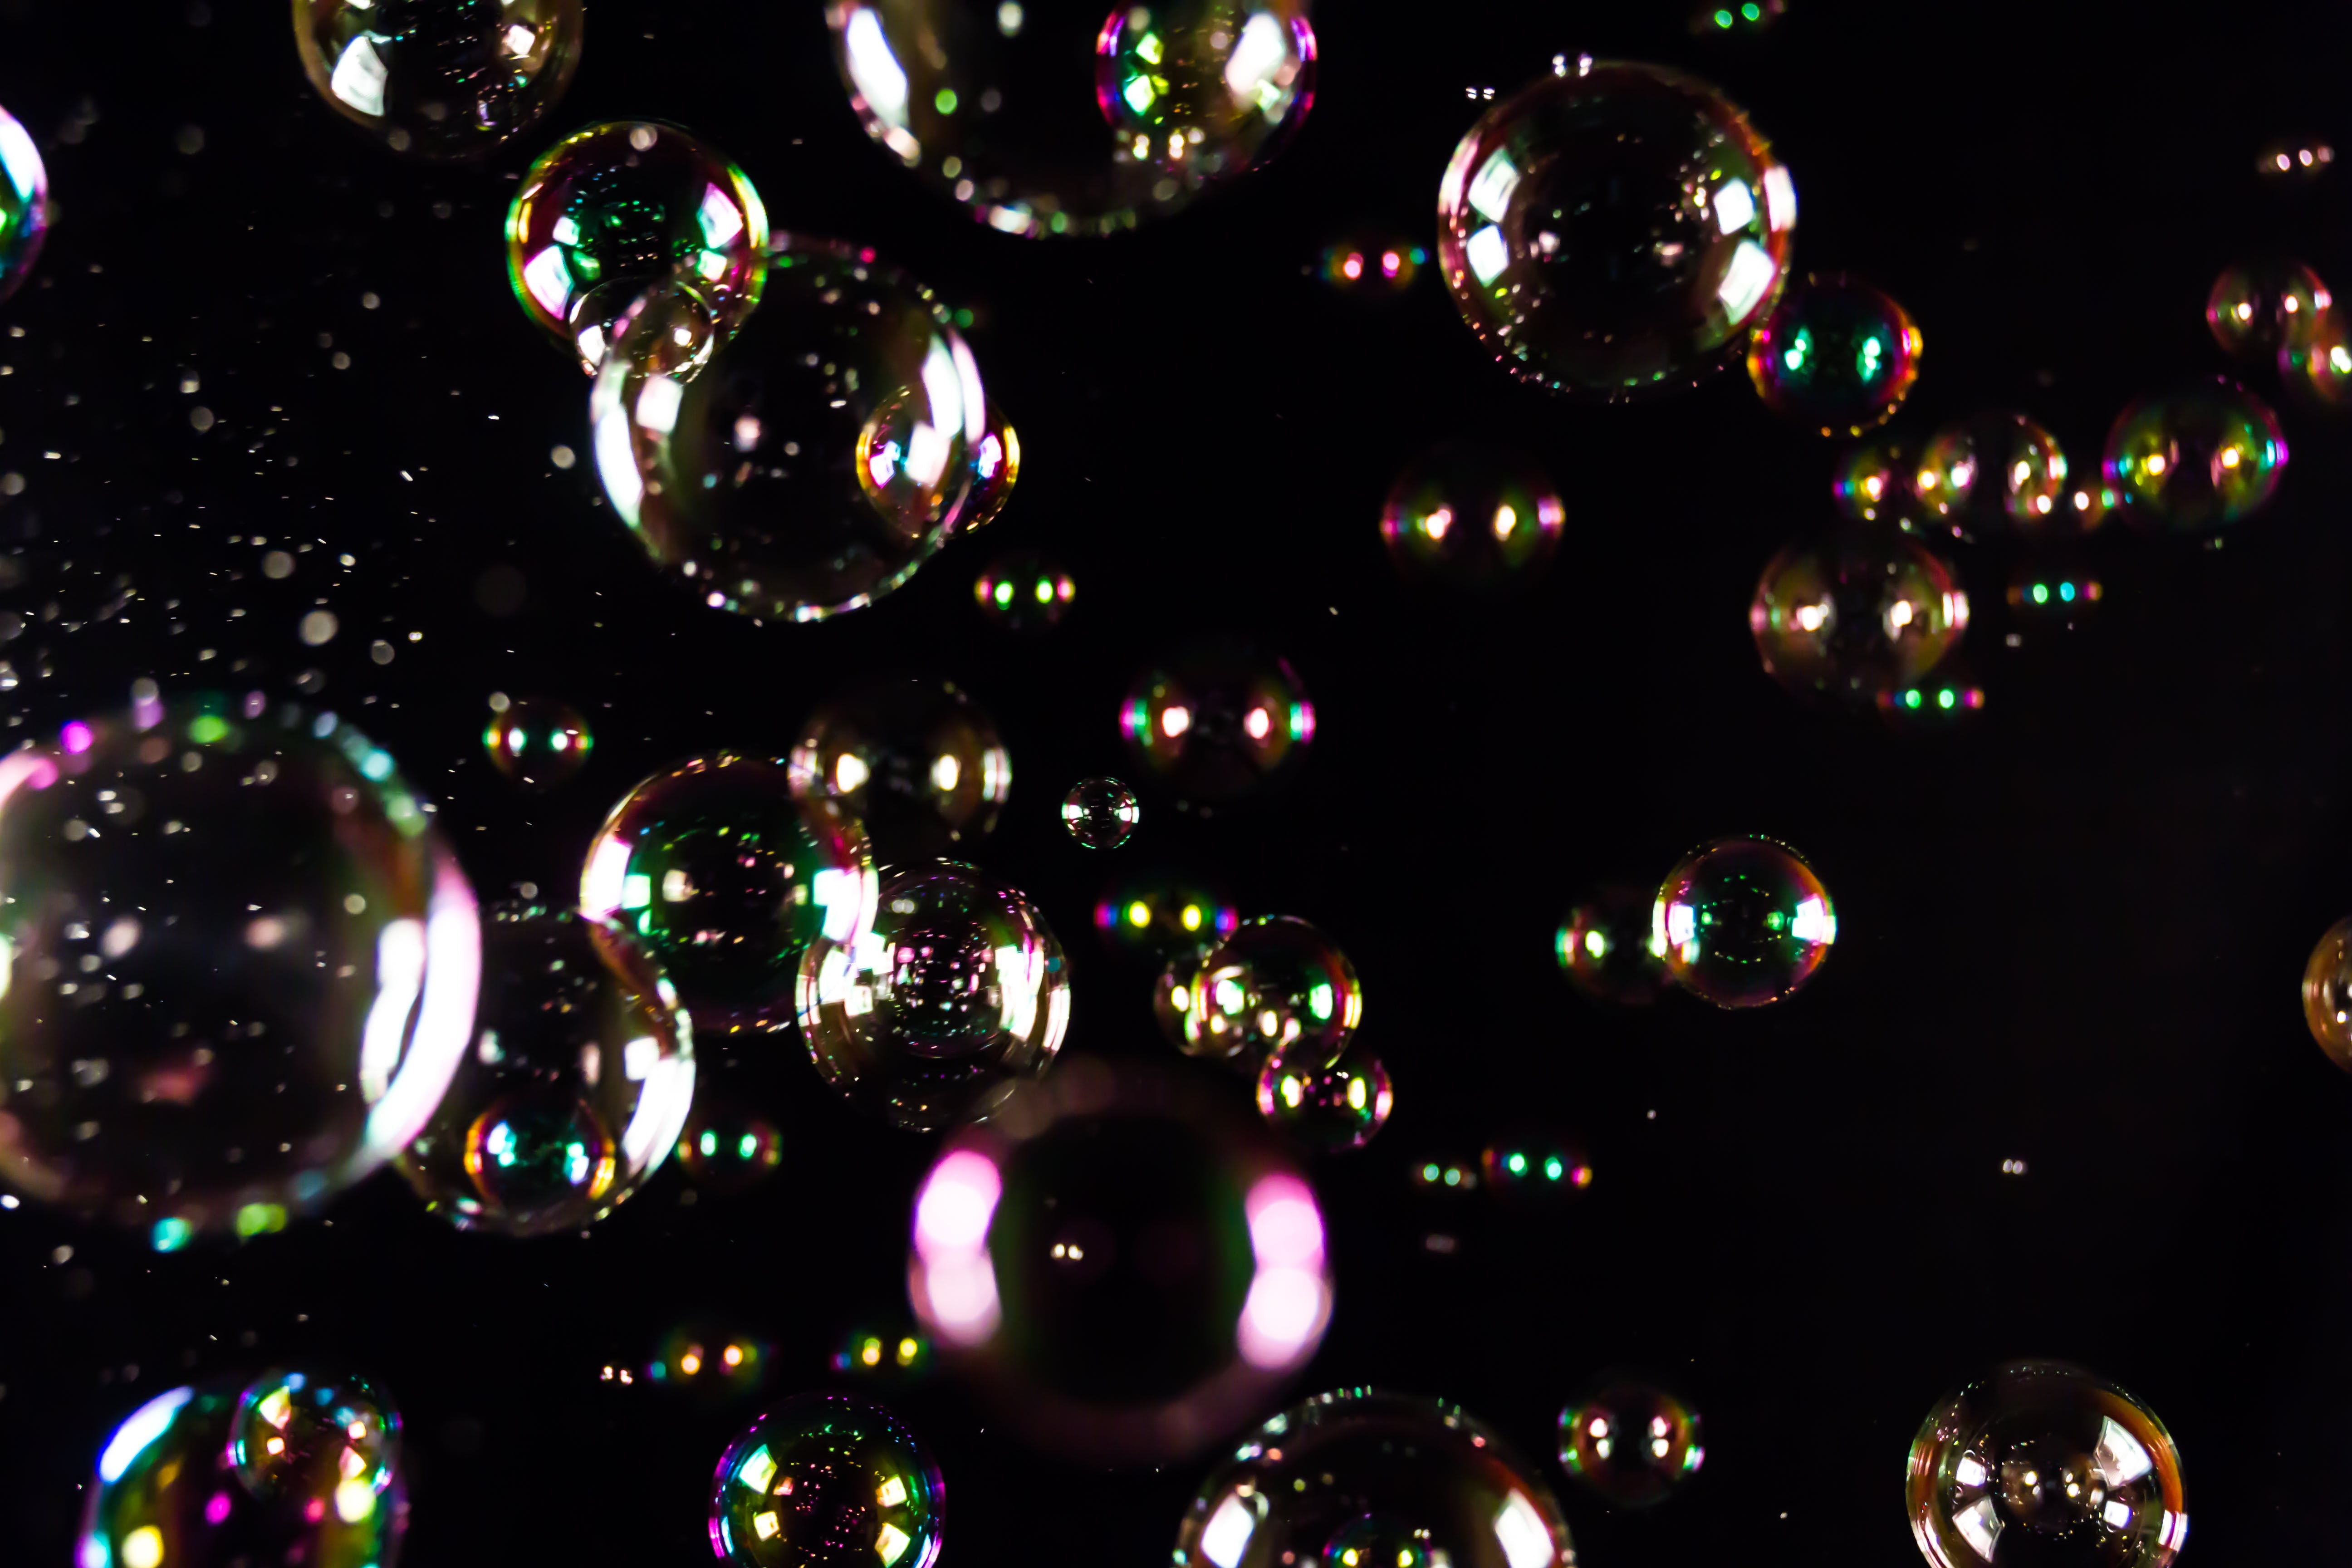 Free stock photo of balloons, black, bubbles, colorful